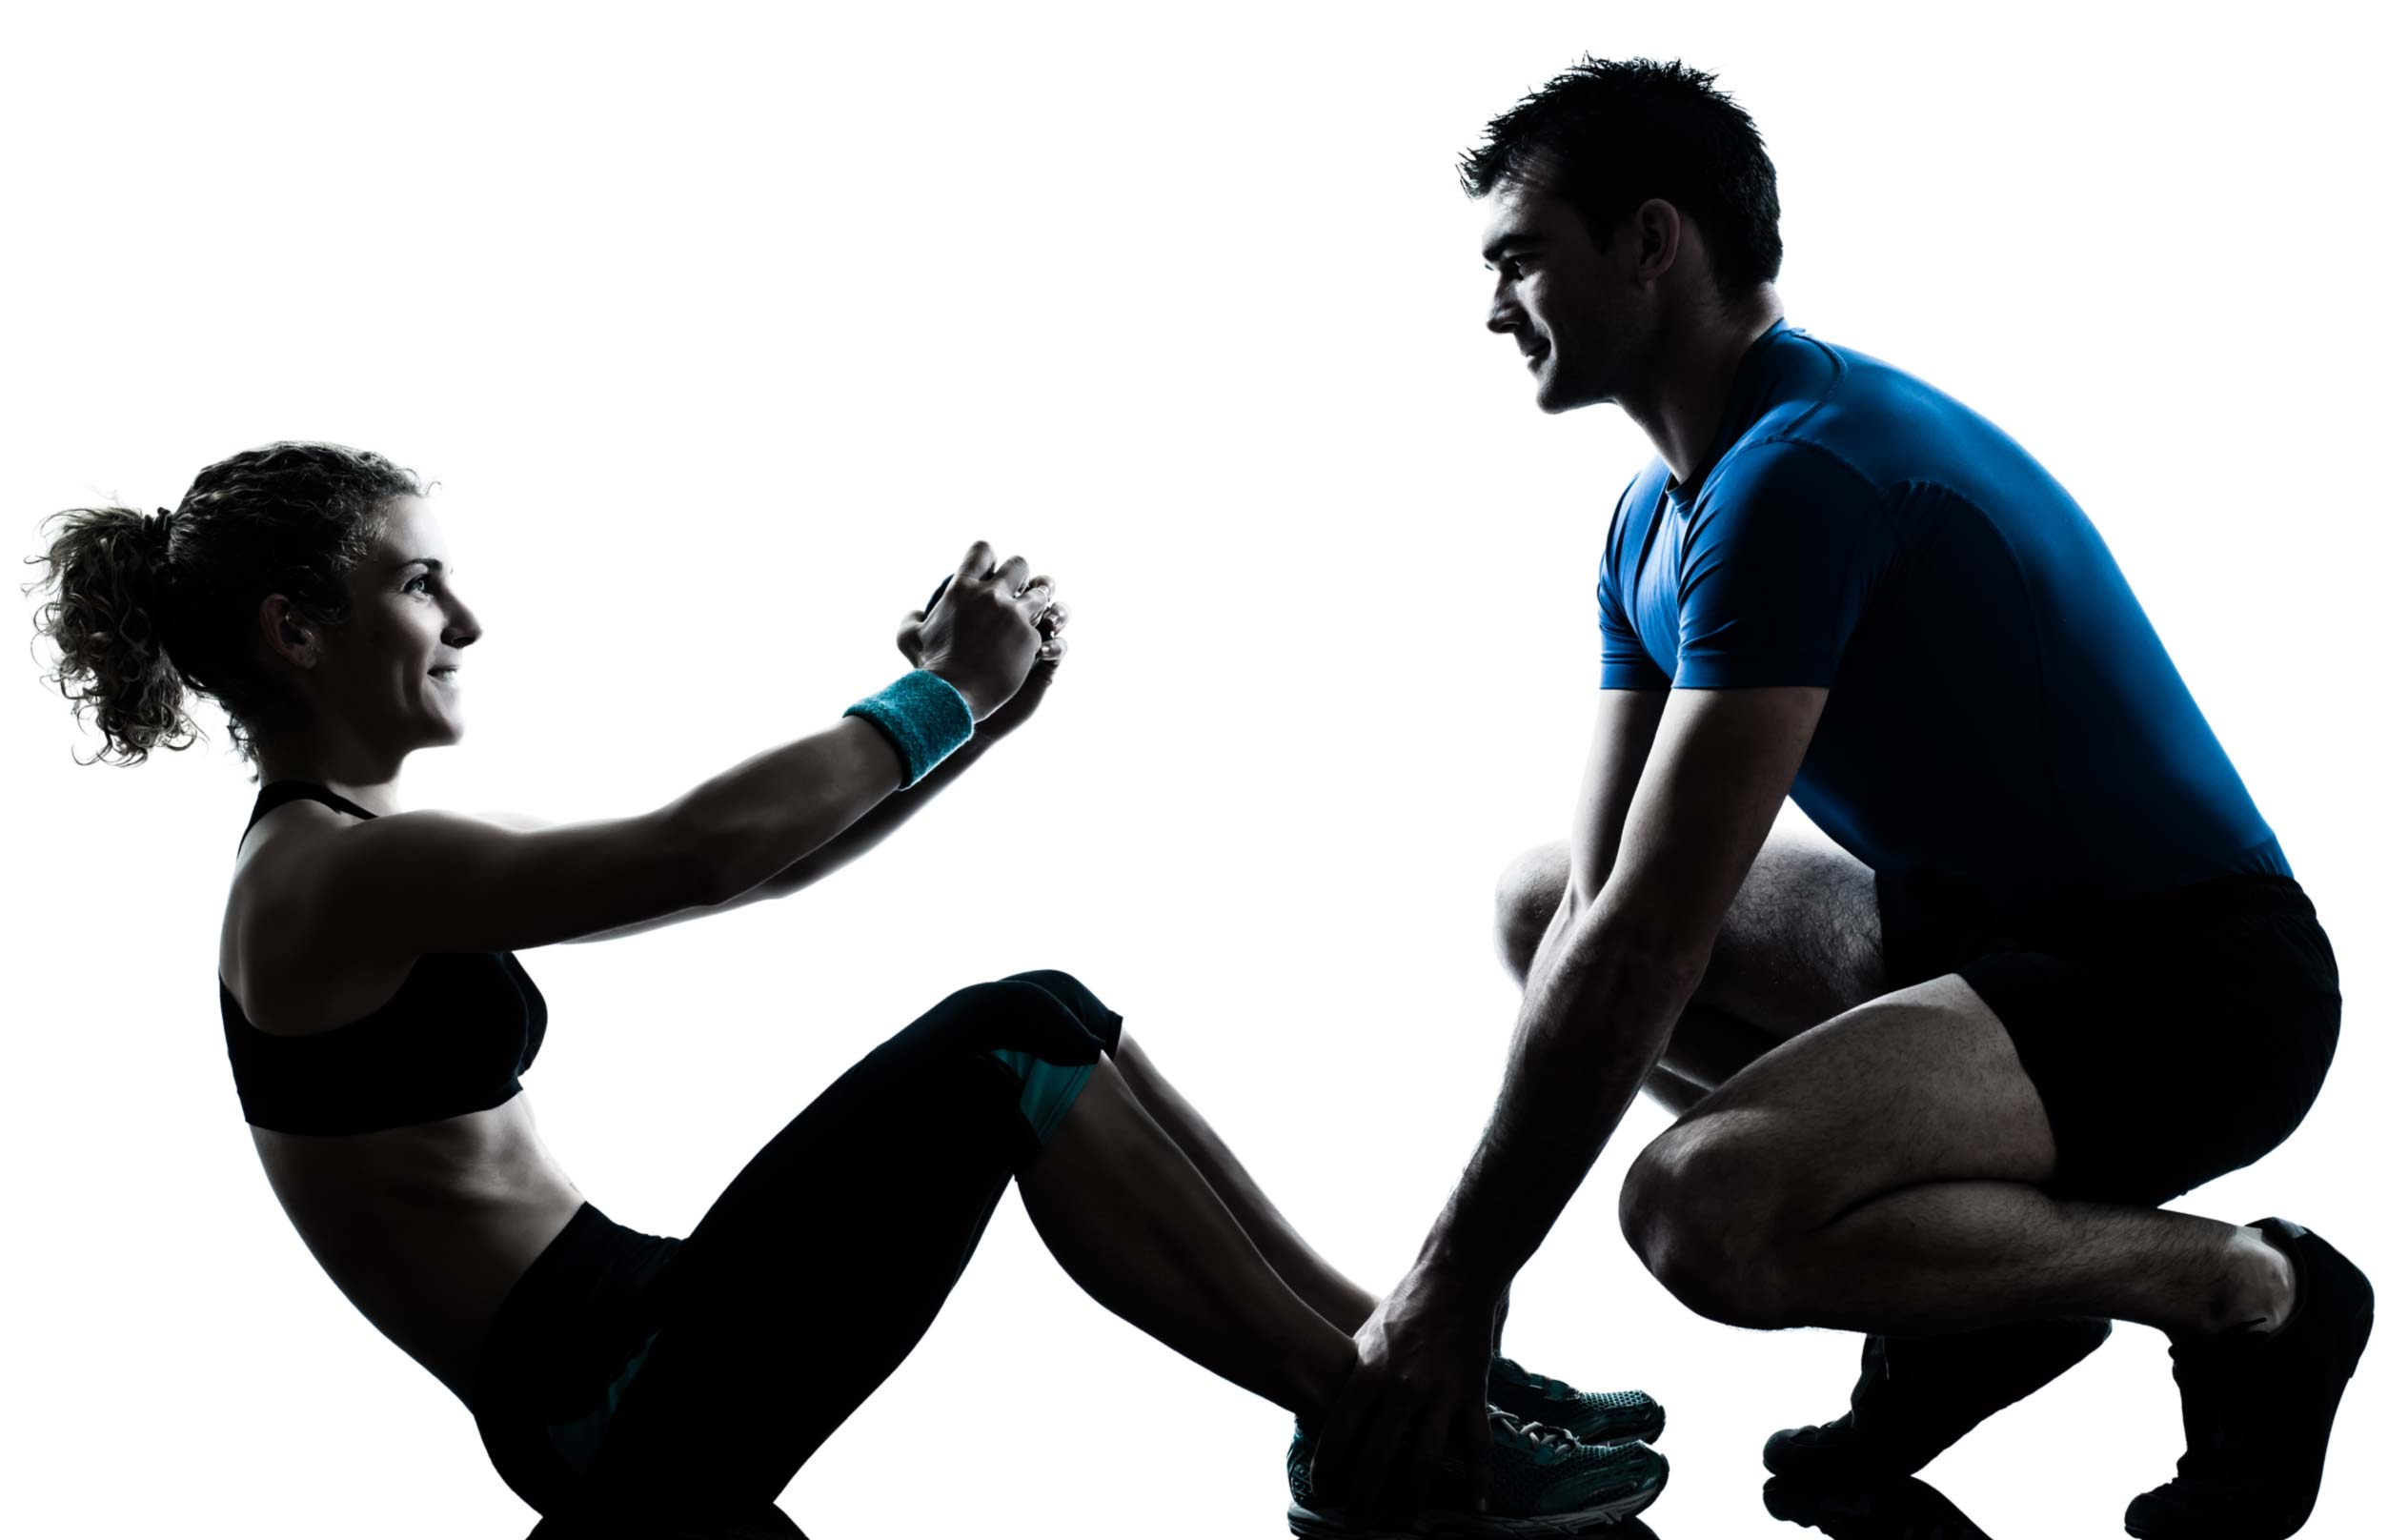 physiotherapy solutions - image of a man and woman exercising